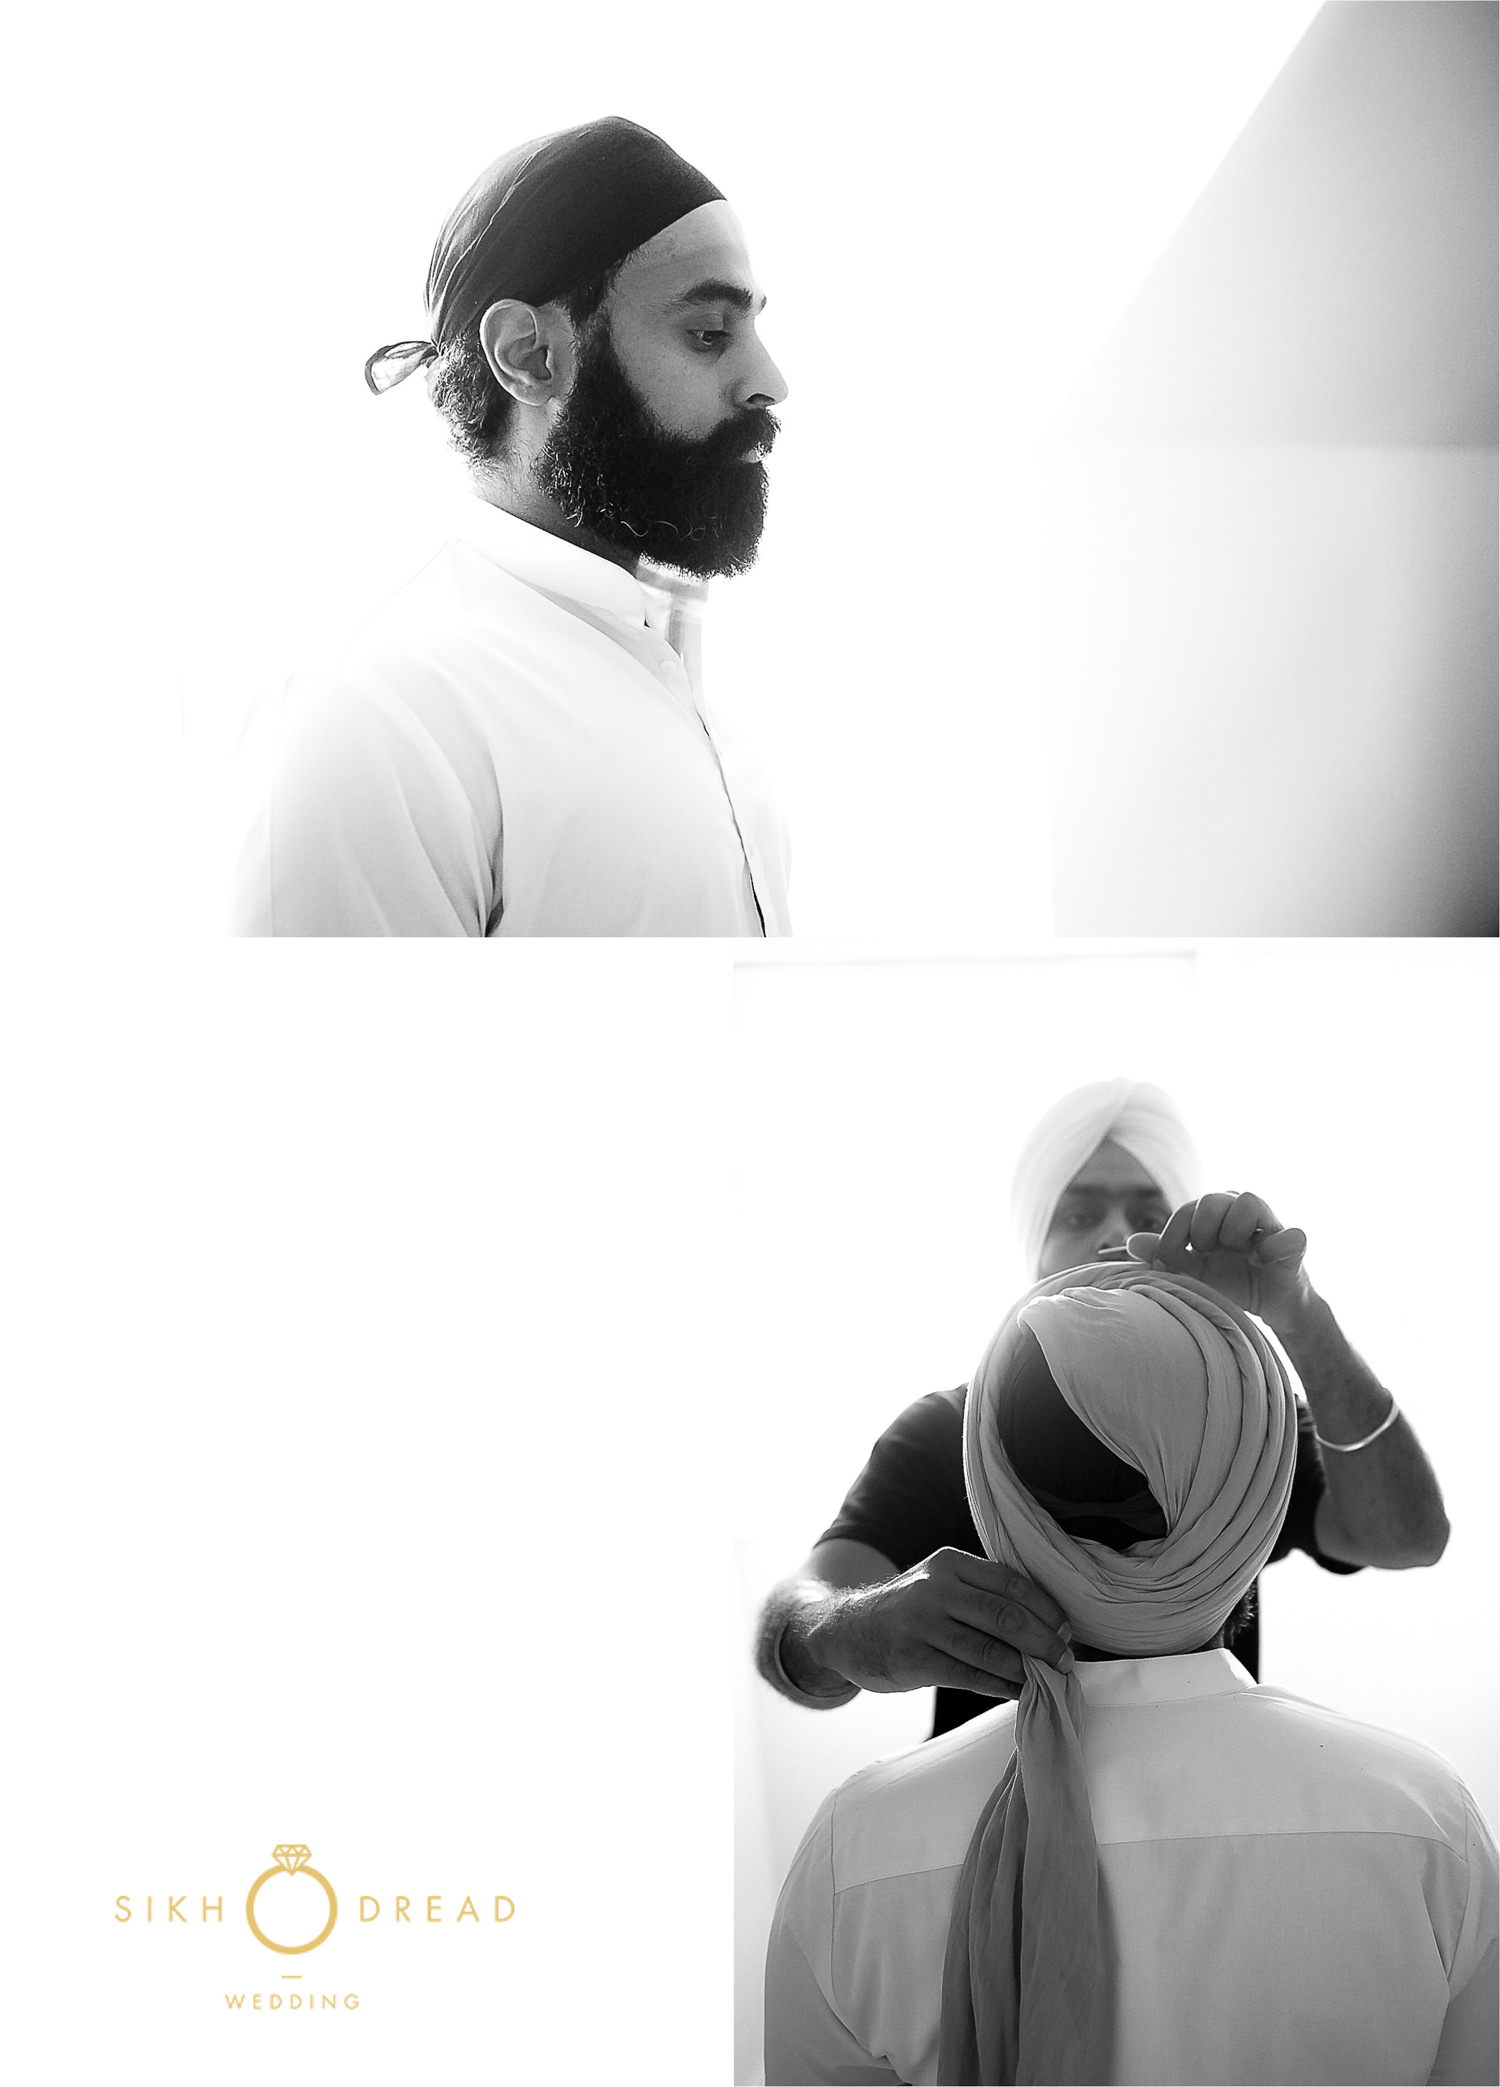 Sikh groom getting ready tying pagh